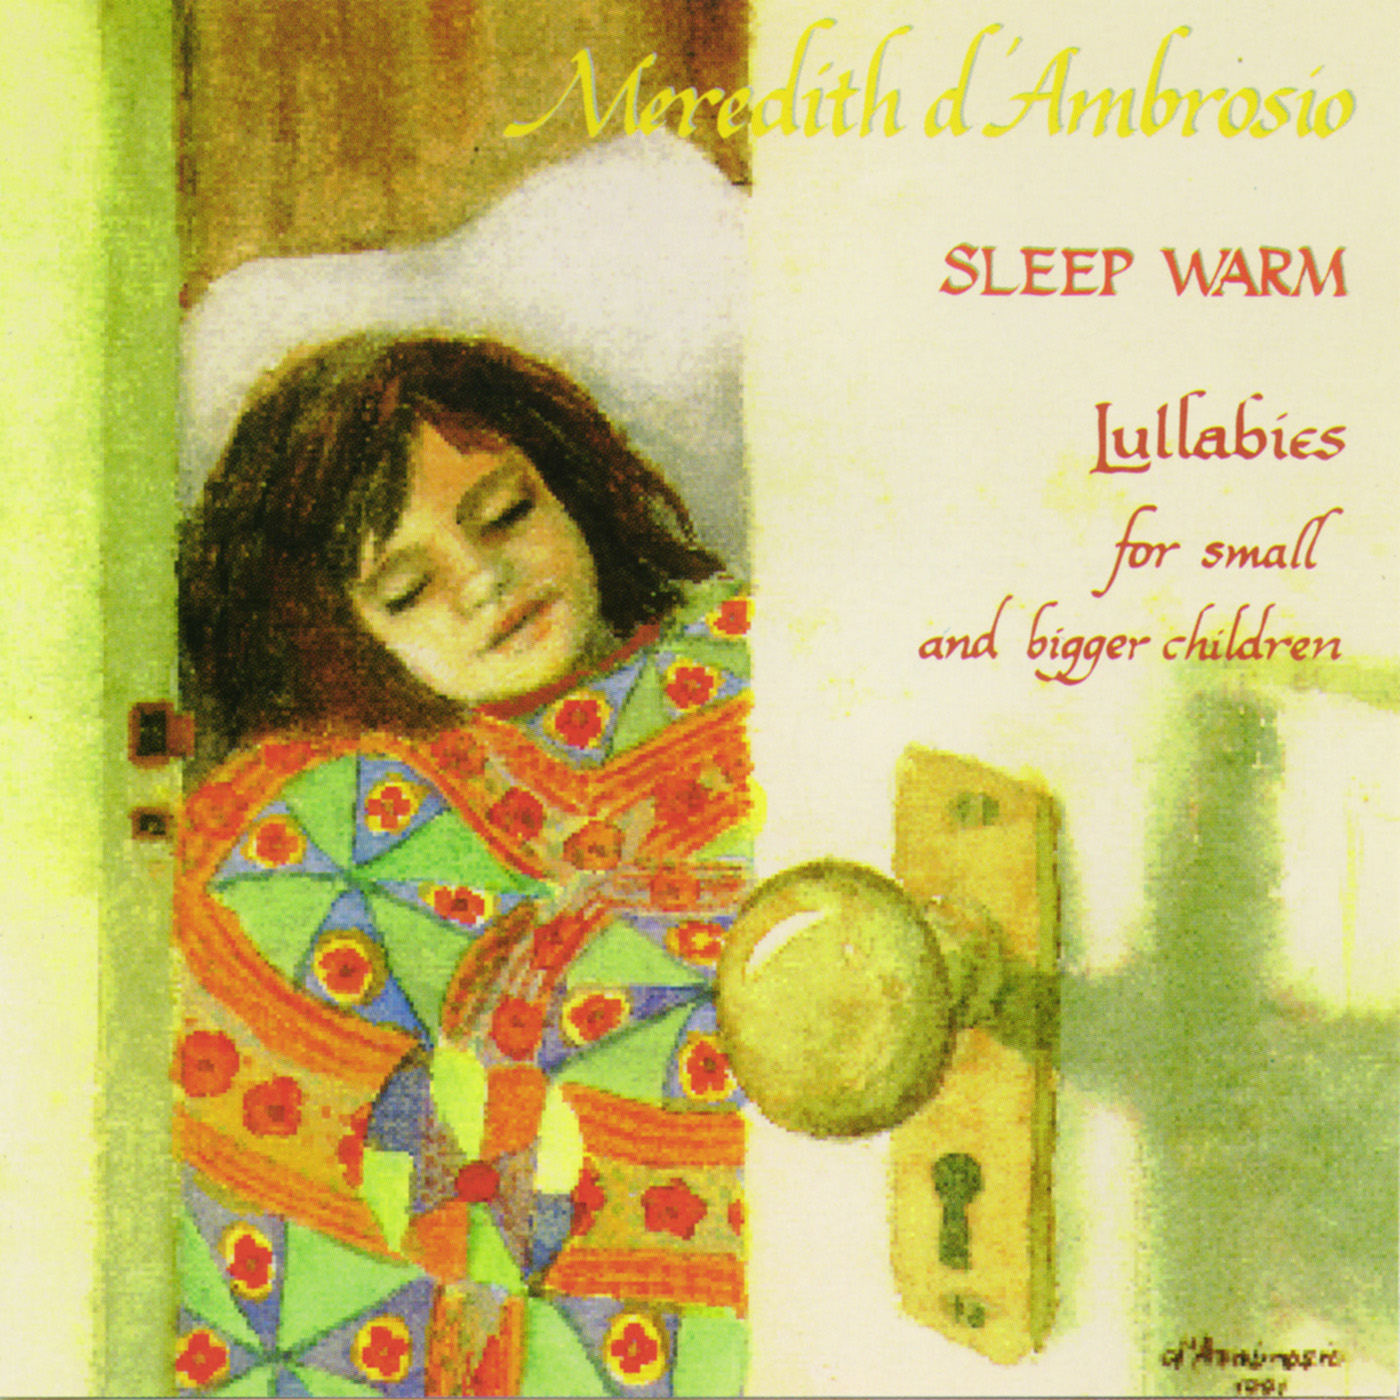 Sleep Warm by Meredith d'Ambrosio cover